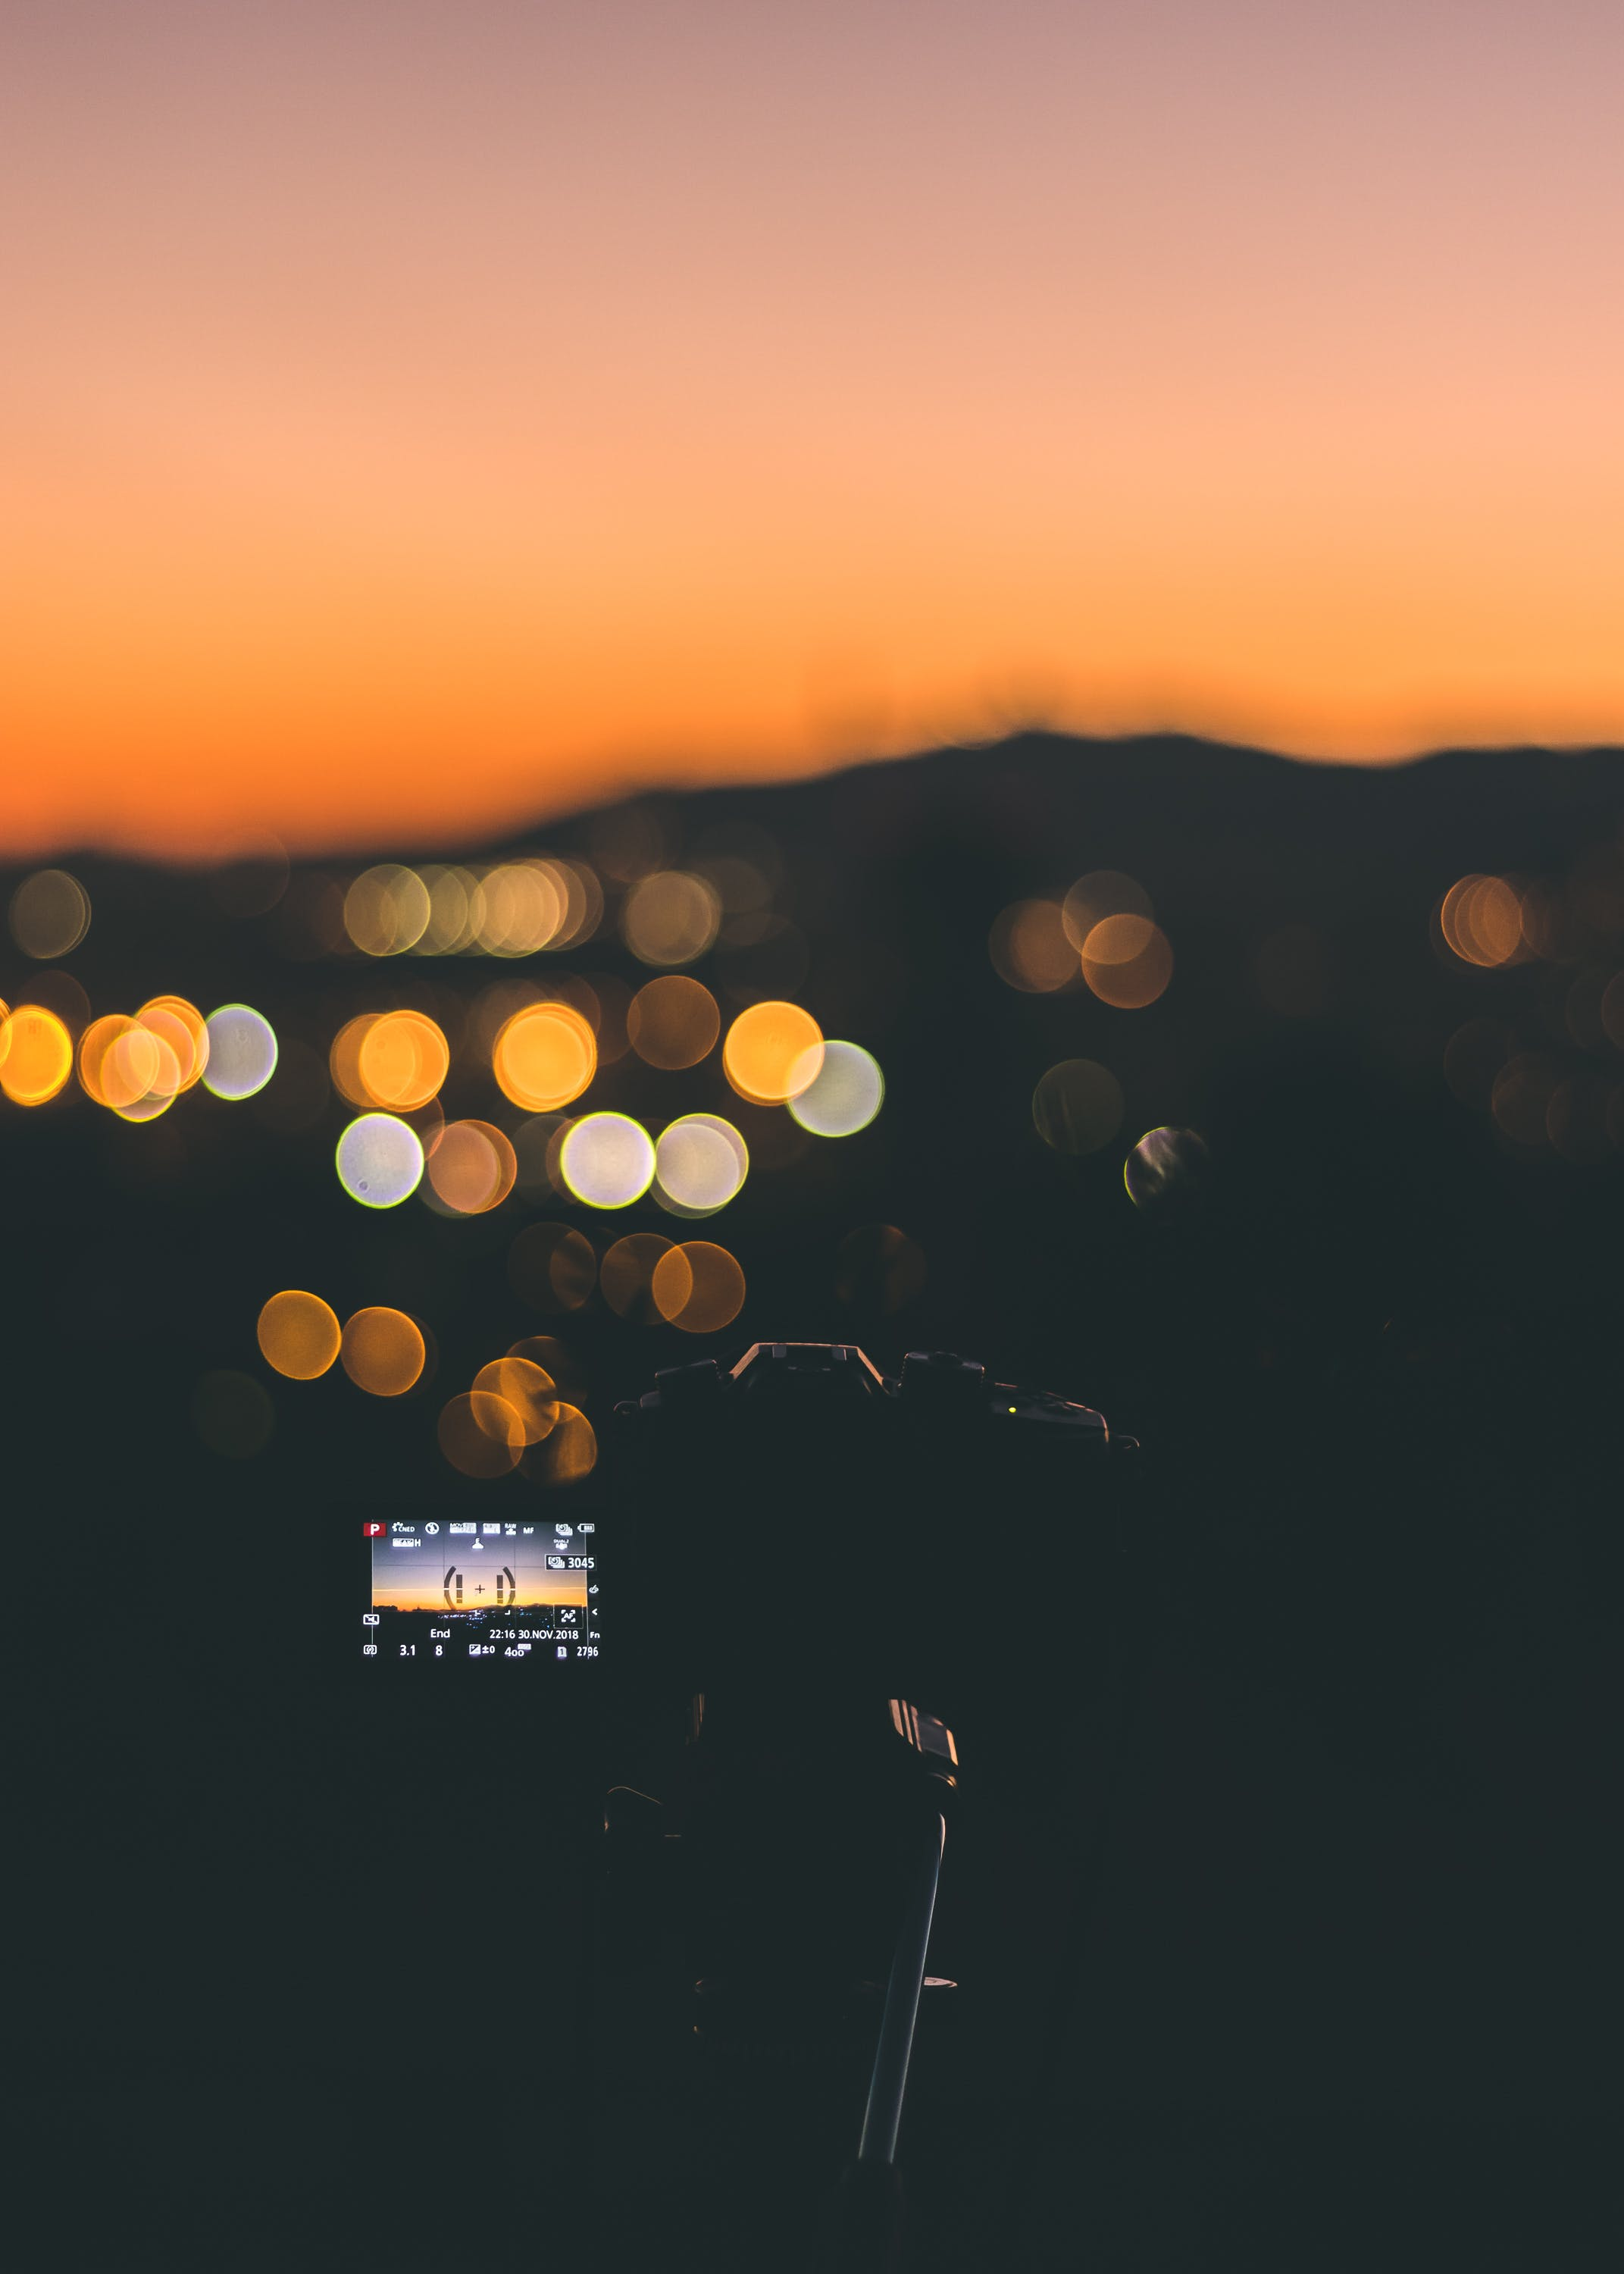 Bokeh Photography of Turned-on Camcorder